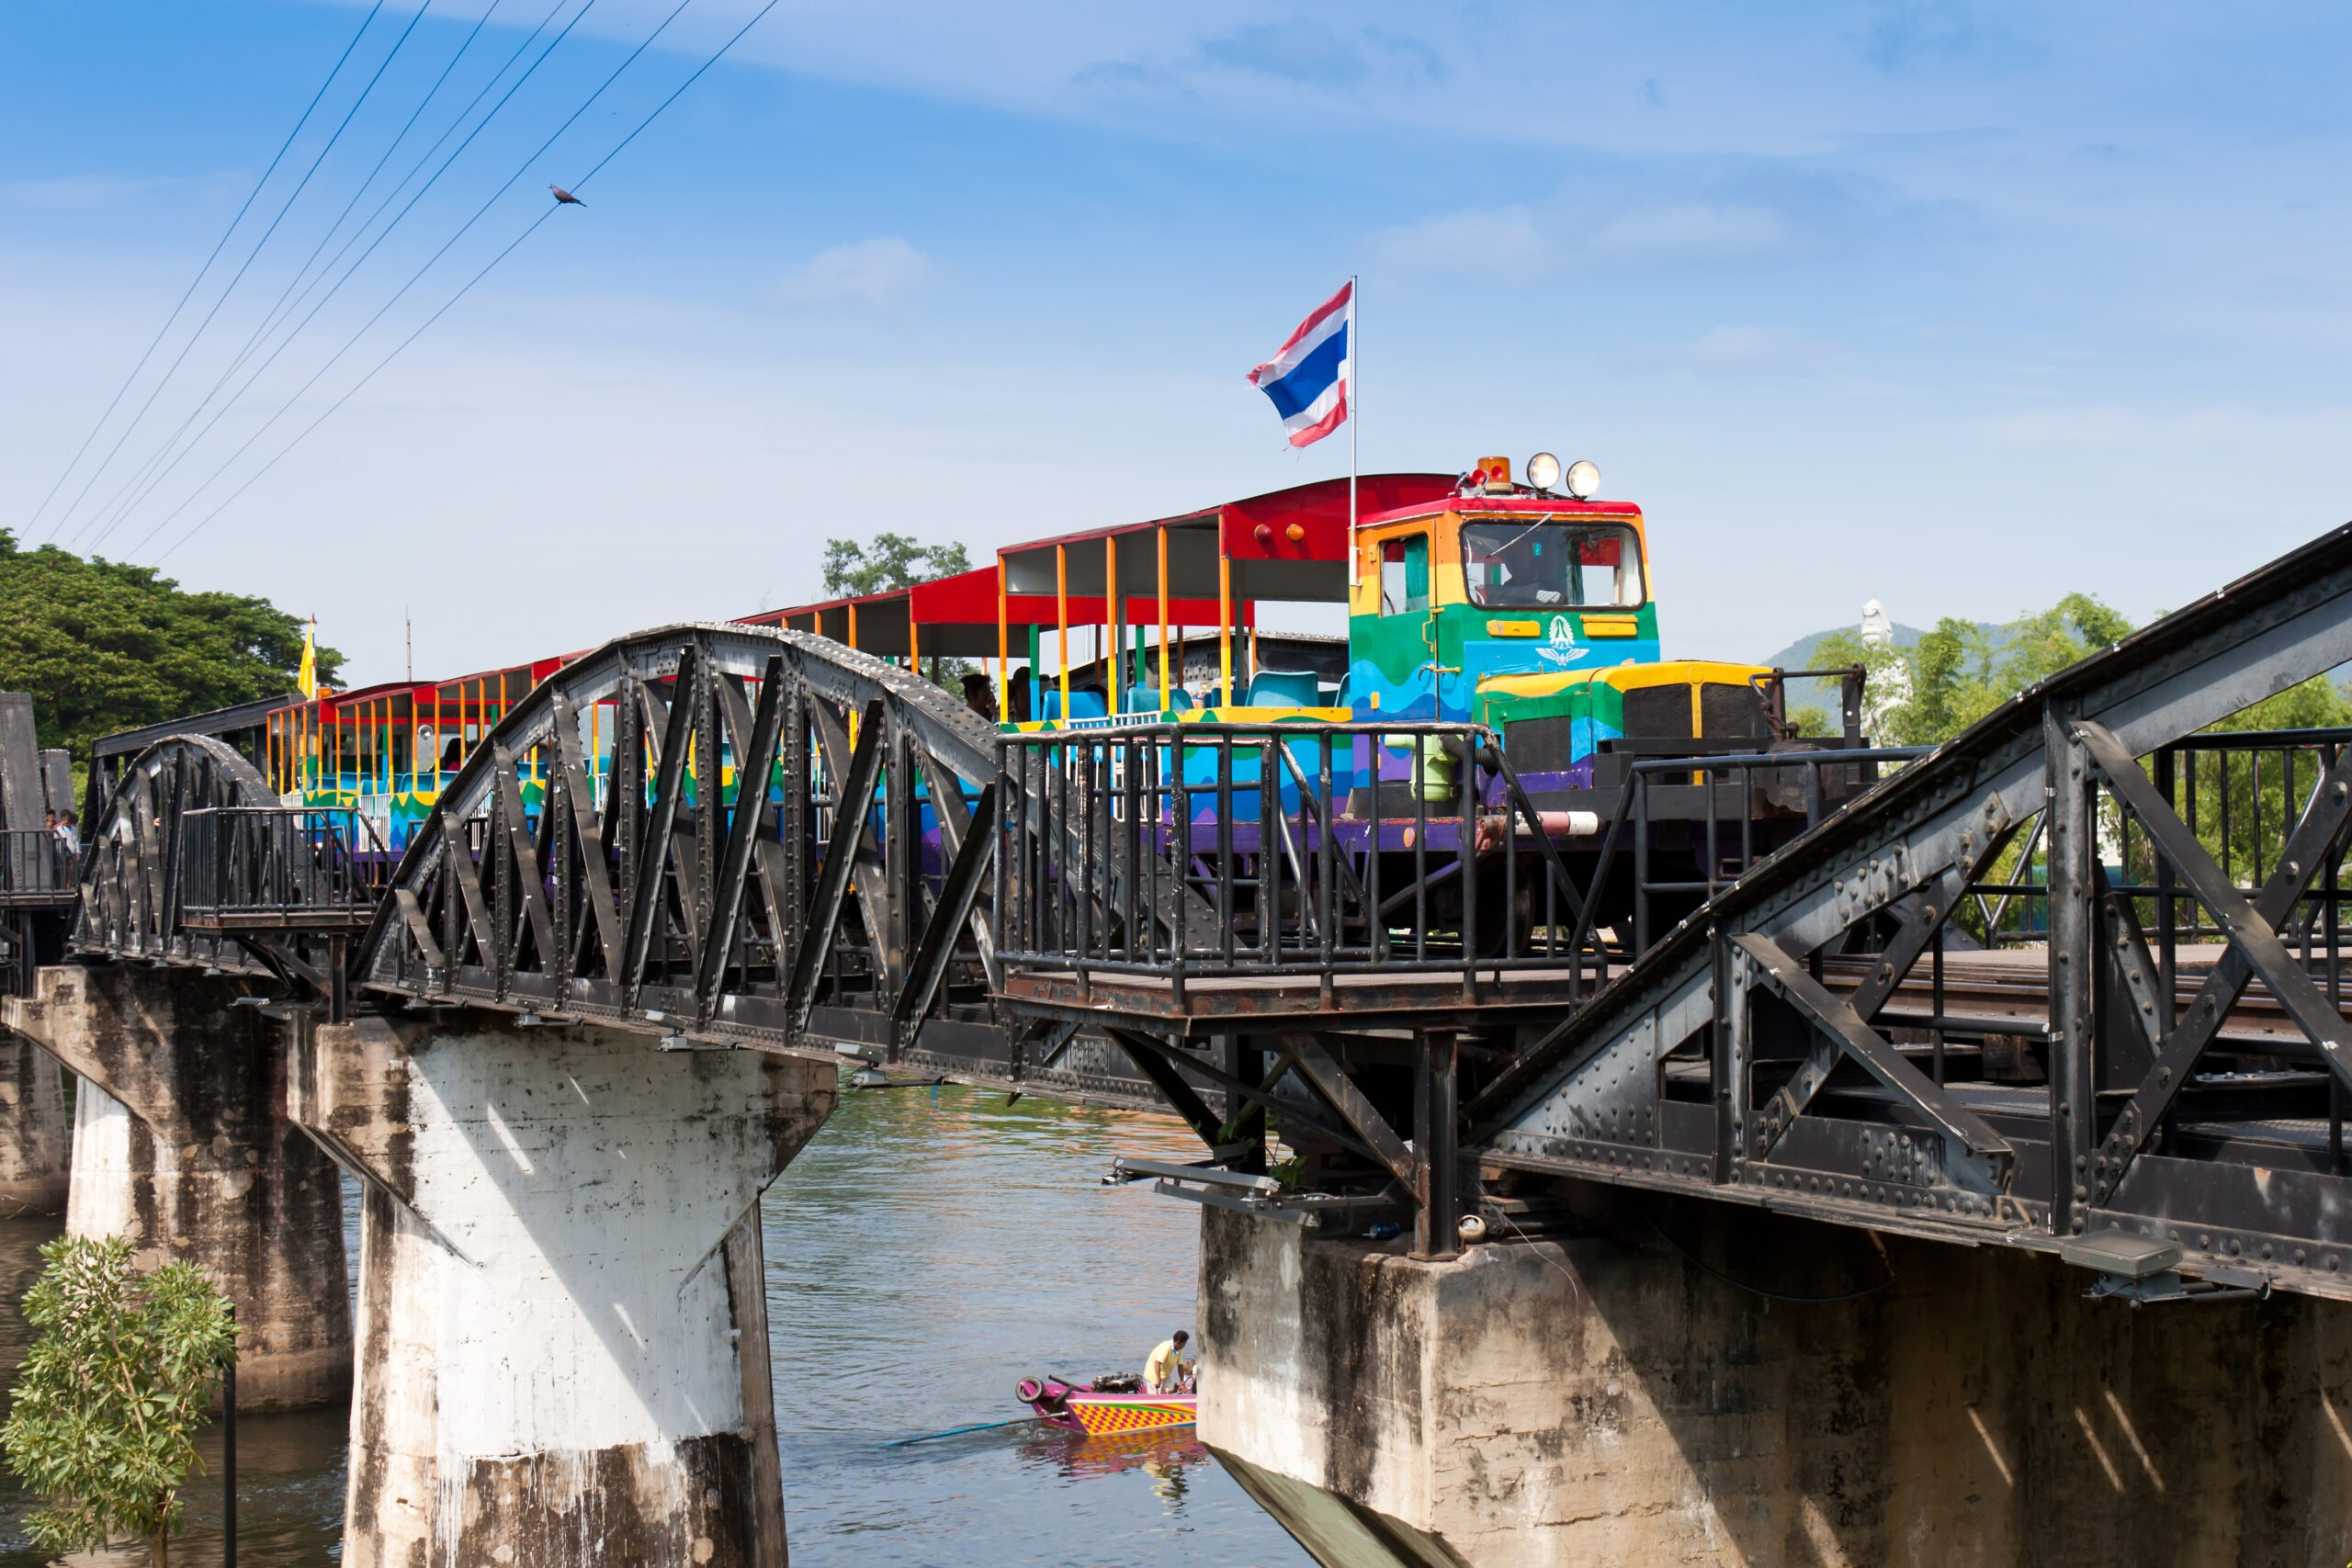 Thailand-Central-Thailand-Kanchanaburi-Transportation-Train-Tracks(2)